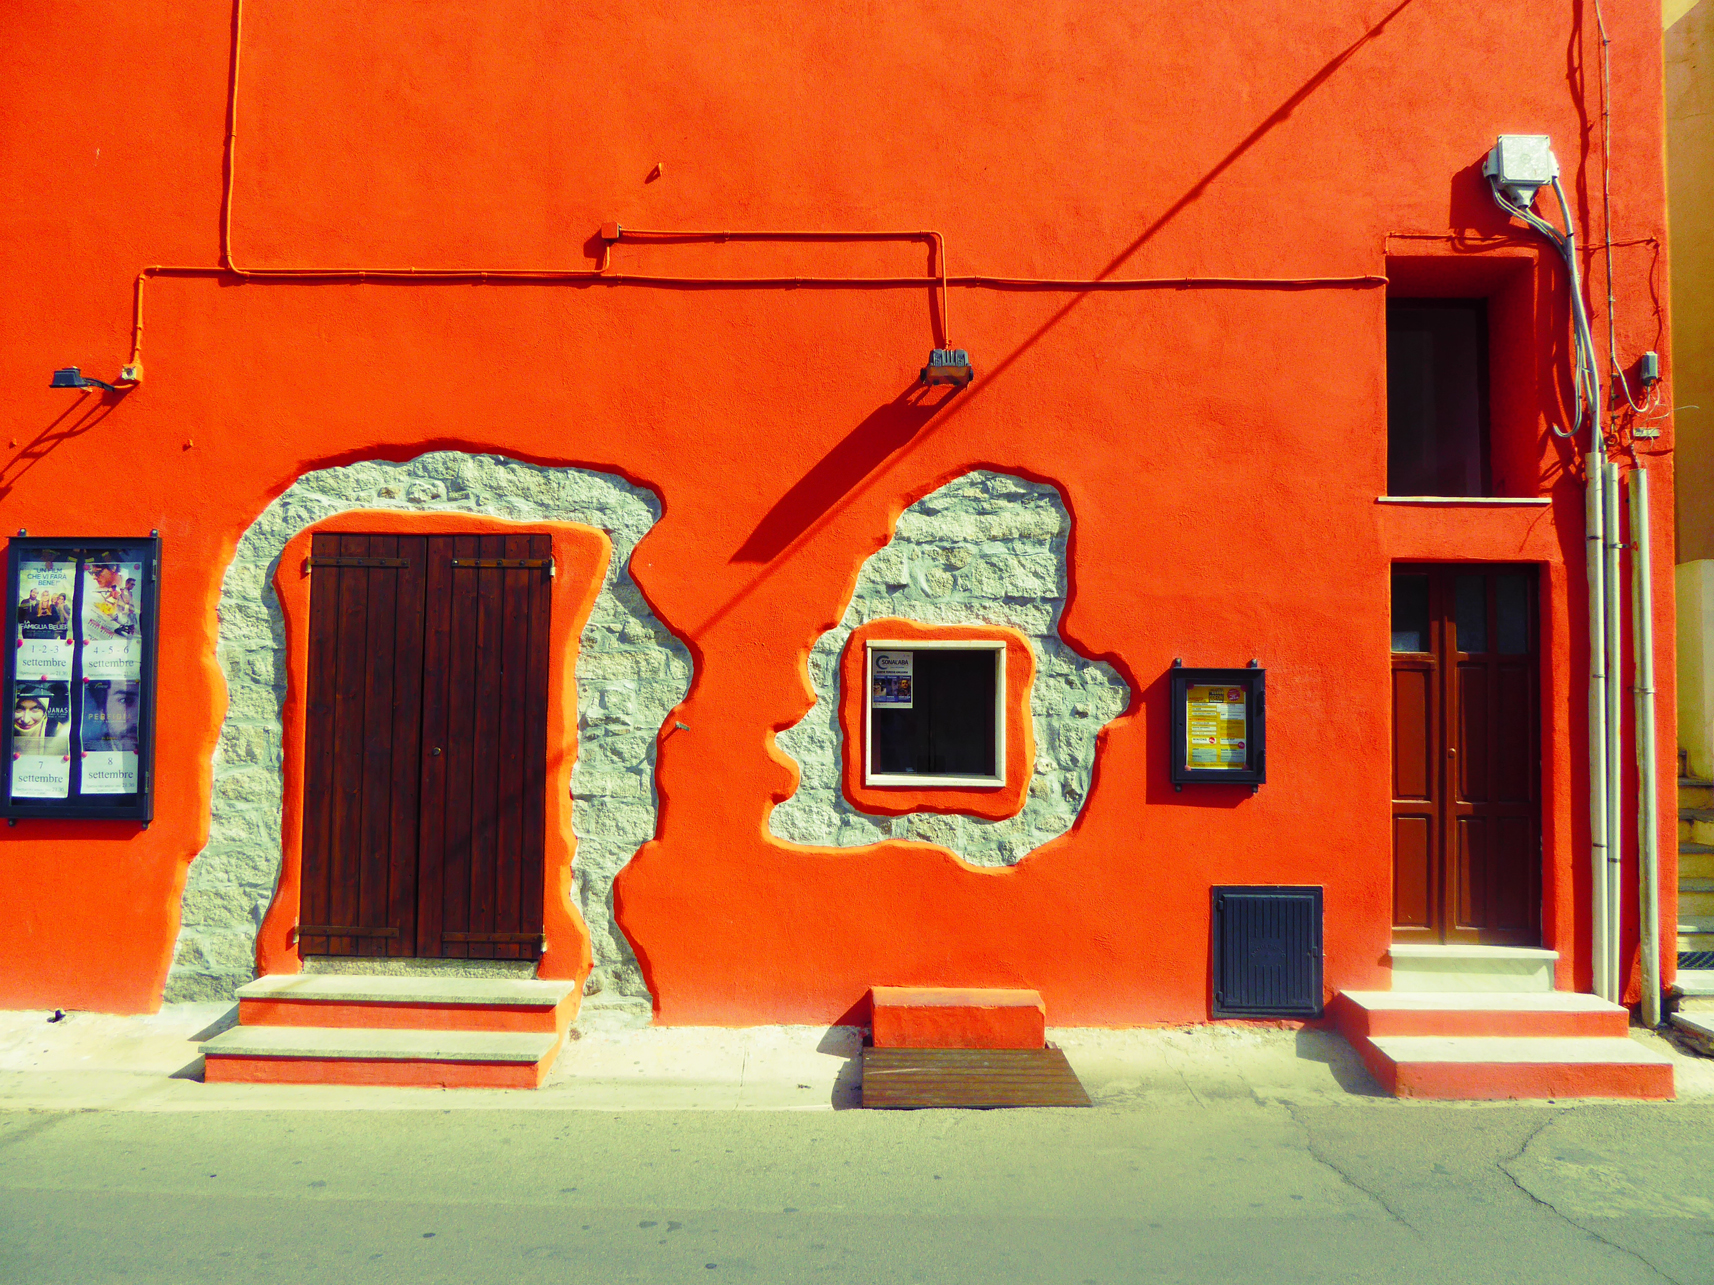 red-house-santa-teresa-gallura-sardinia-by-andy-hammond